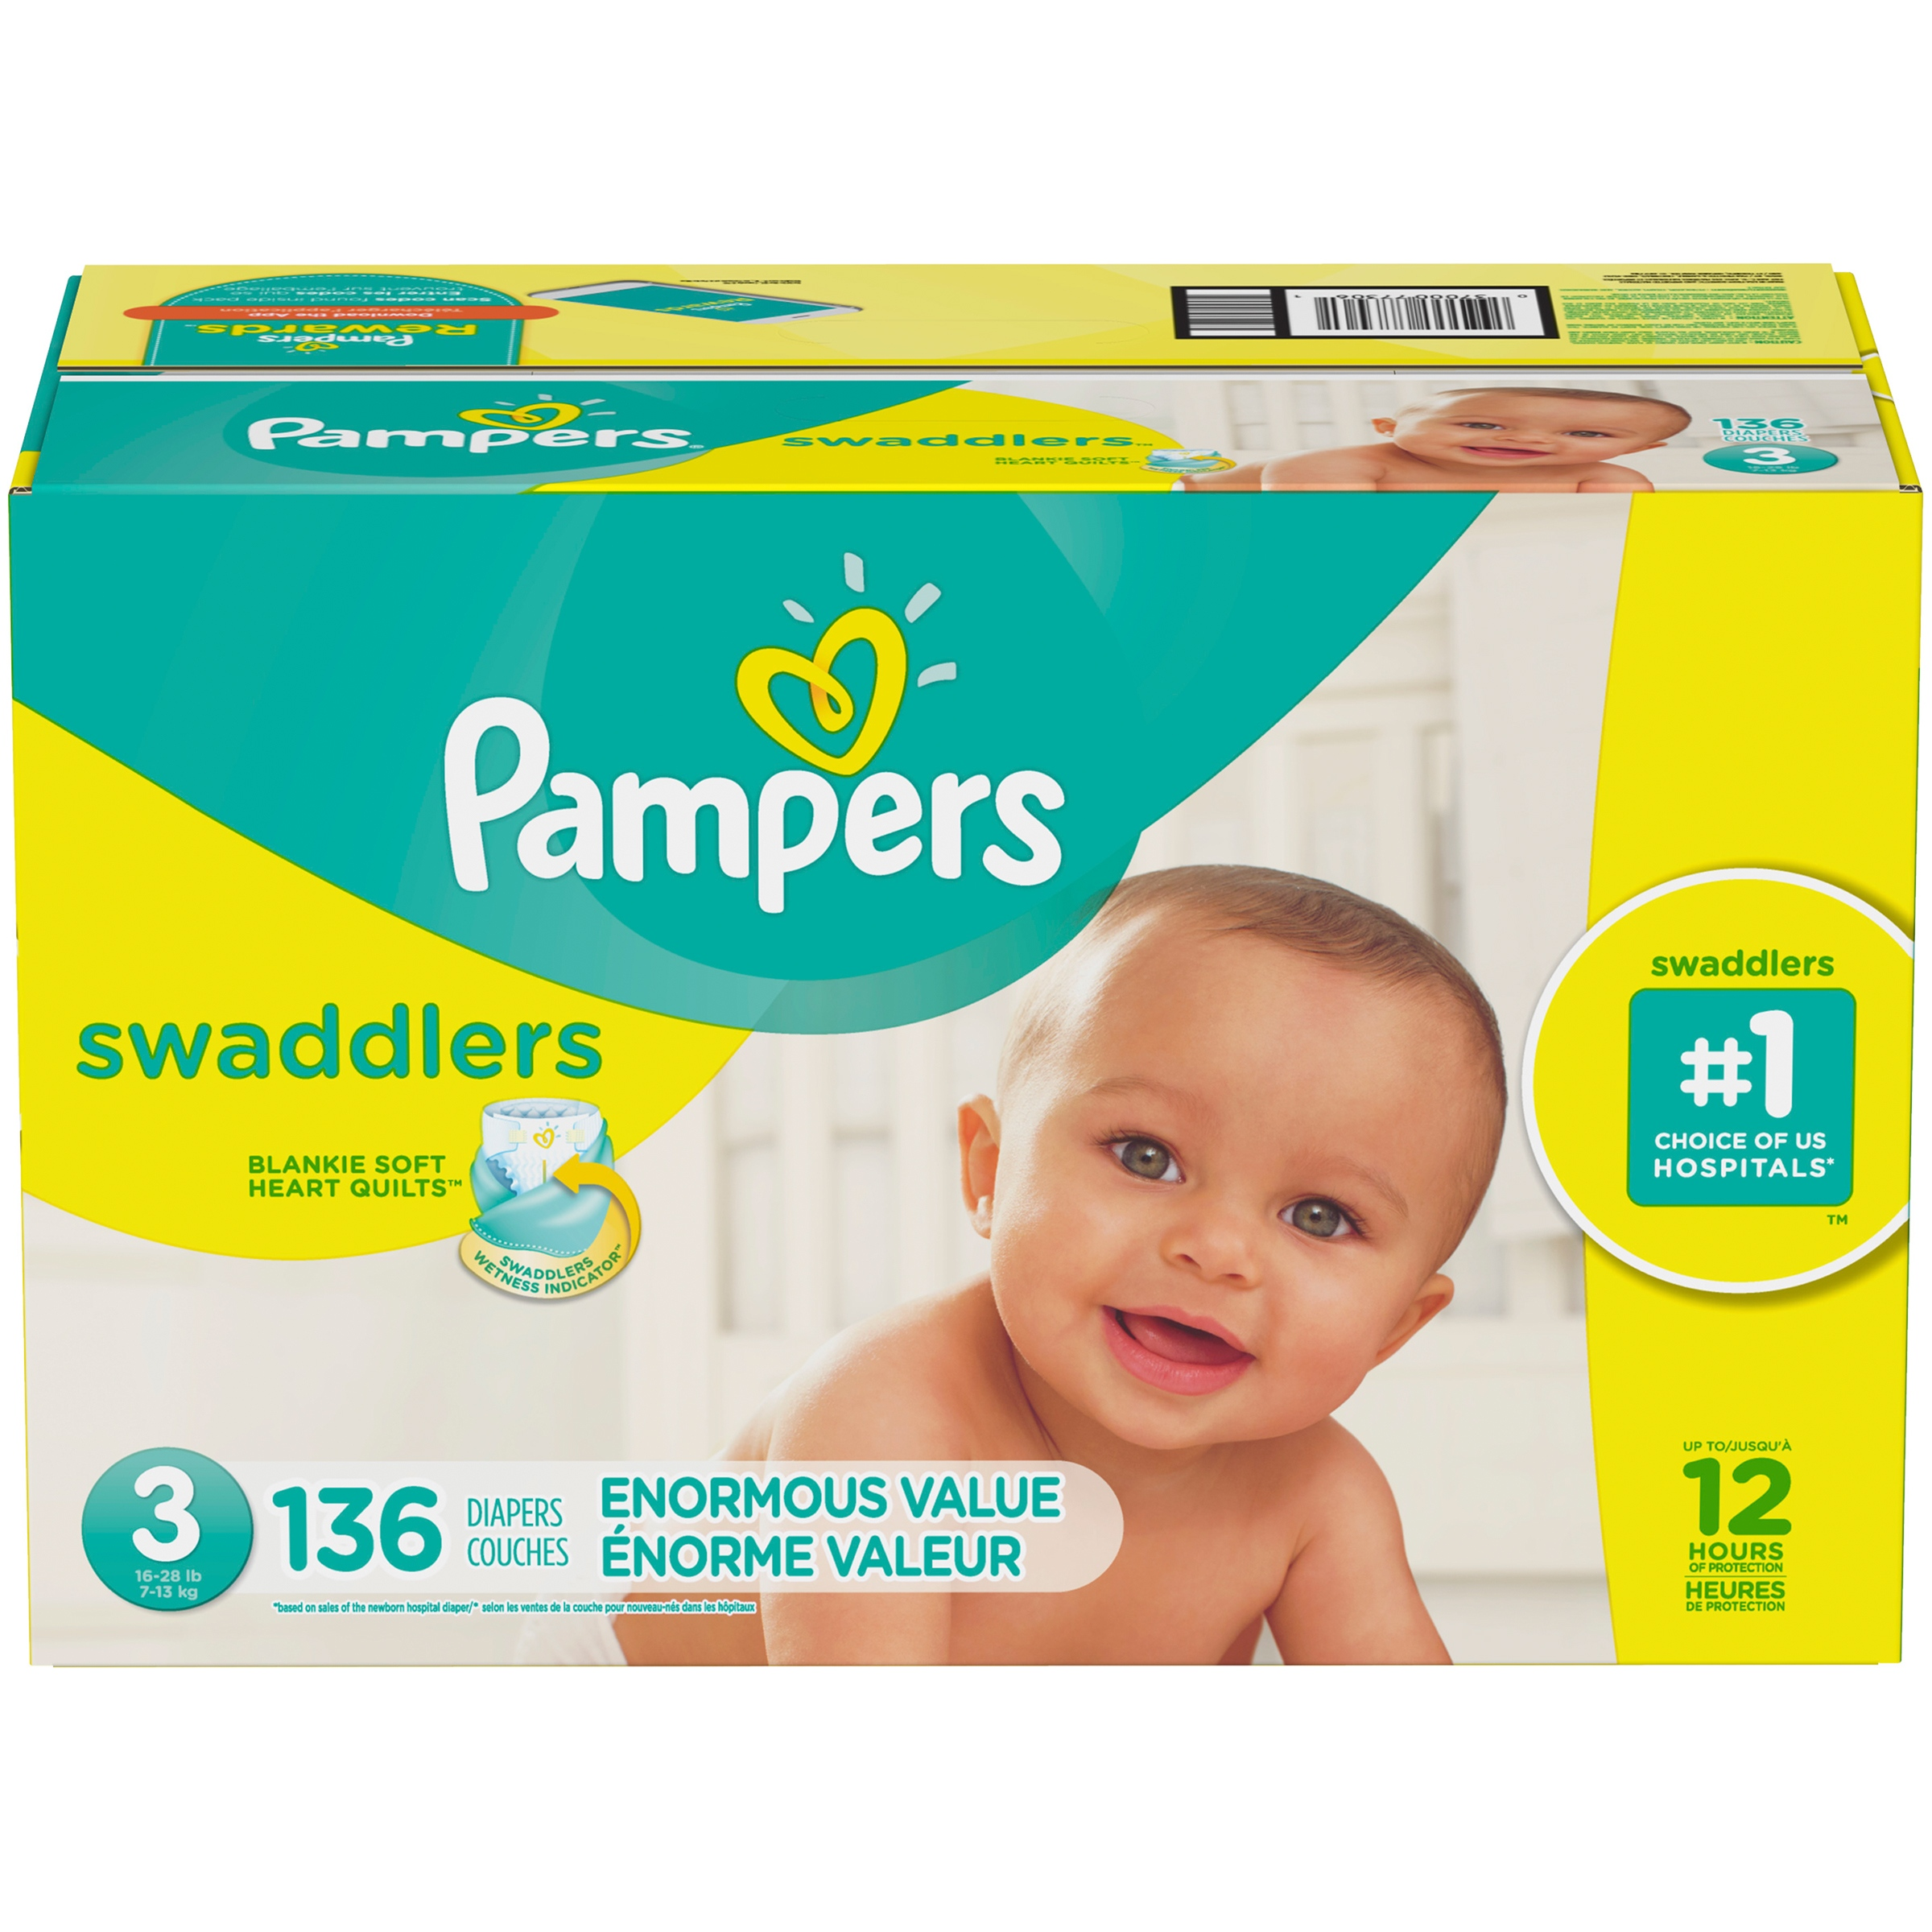 Pampers Swaddlers Diapers Size 3, 136 Count